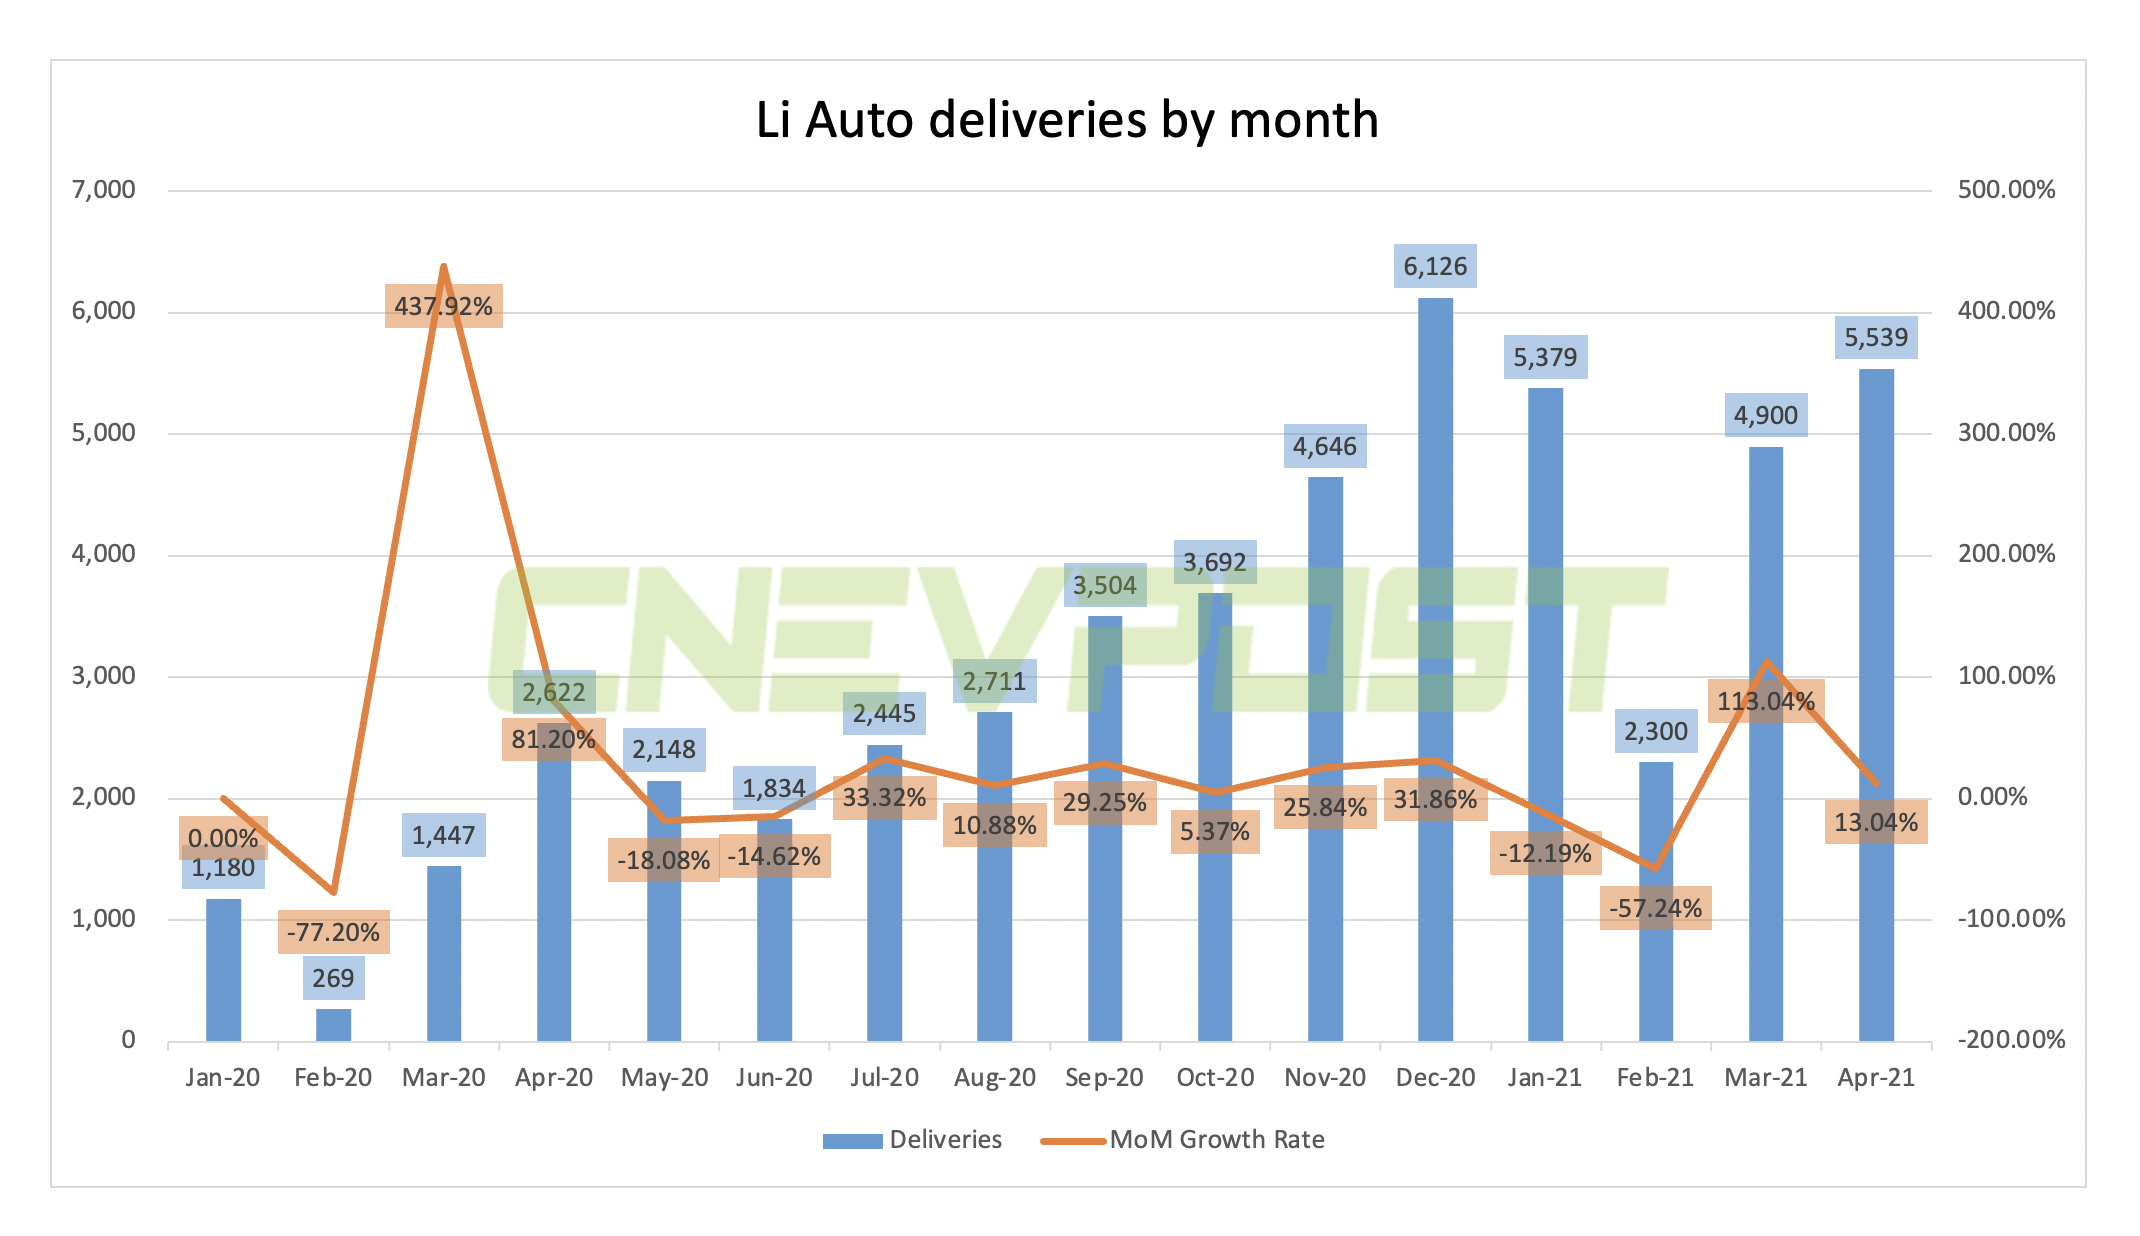 Li Auto delivers 5,539 vehicles in April, up 13% from March-CnEVPost